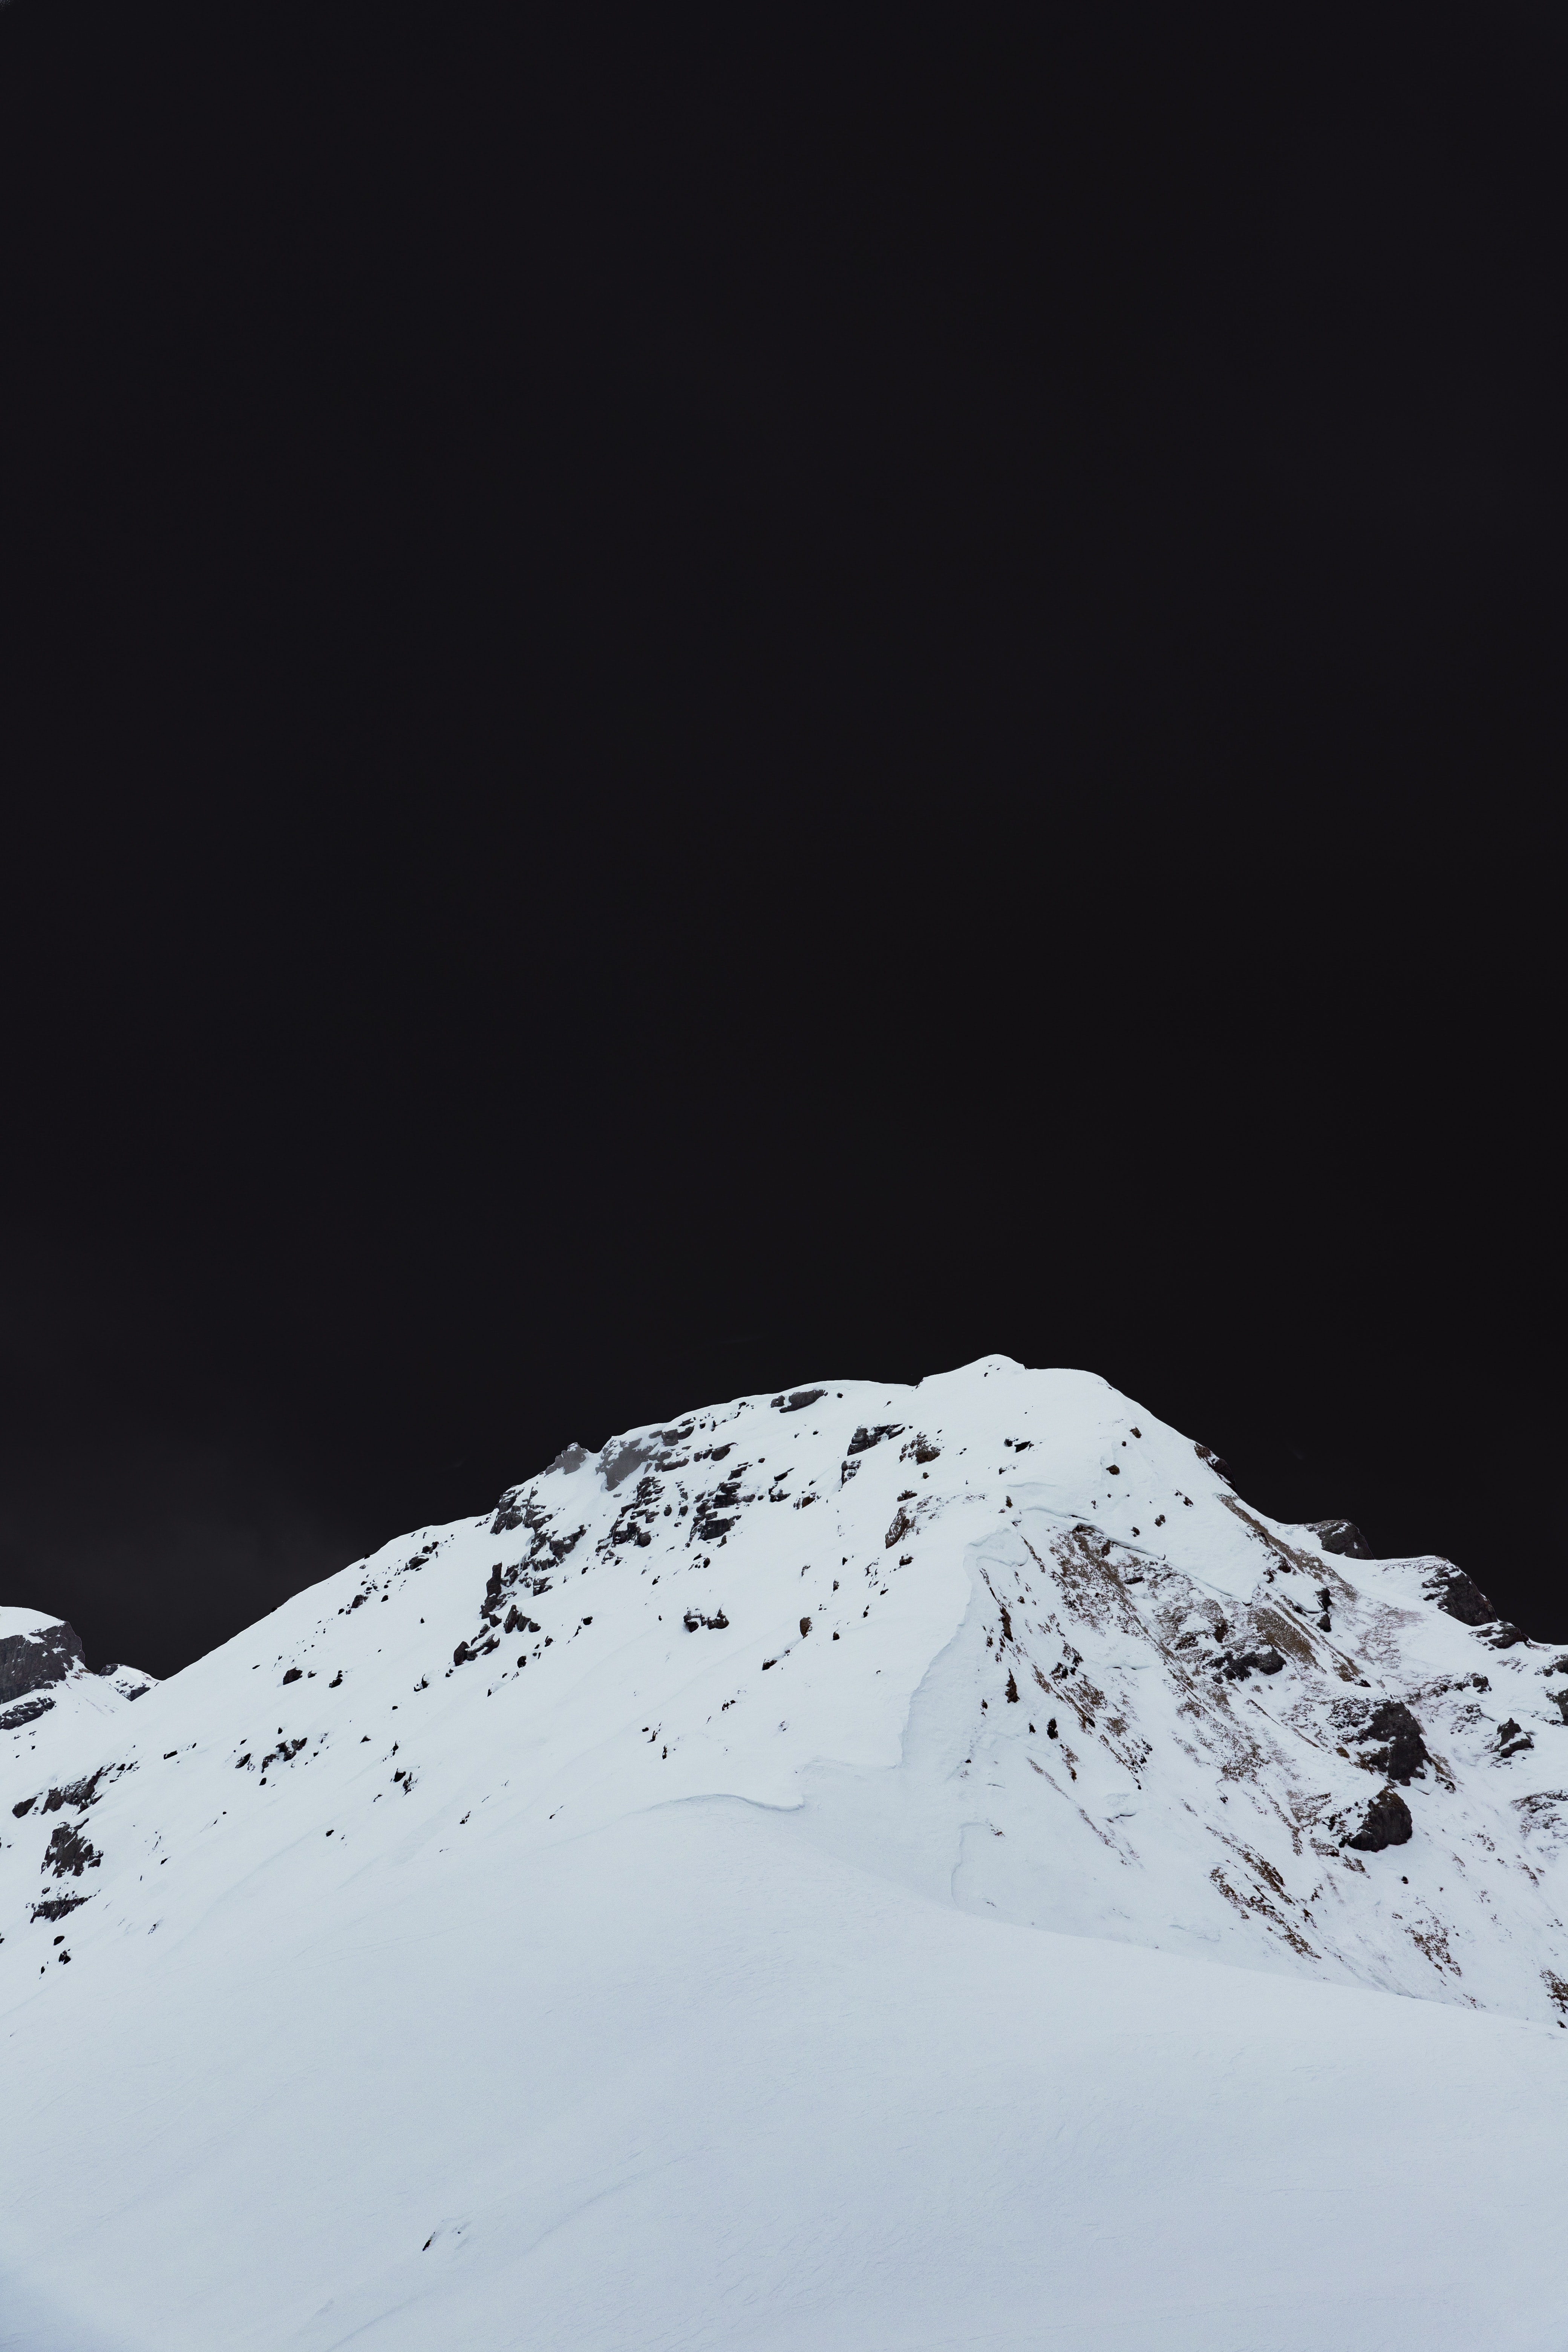 66468 download wallpaper Nature, Mountain, Vertex, Top, Snow Covered, Snowbound, Winter, Landscape screensavers and pictures for free